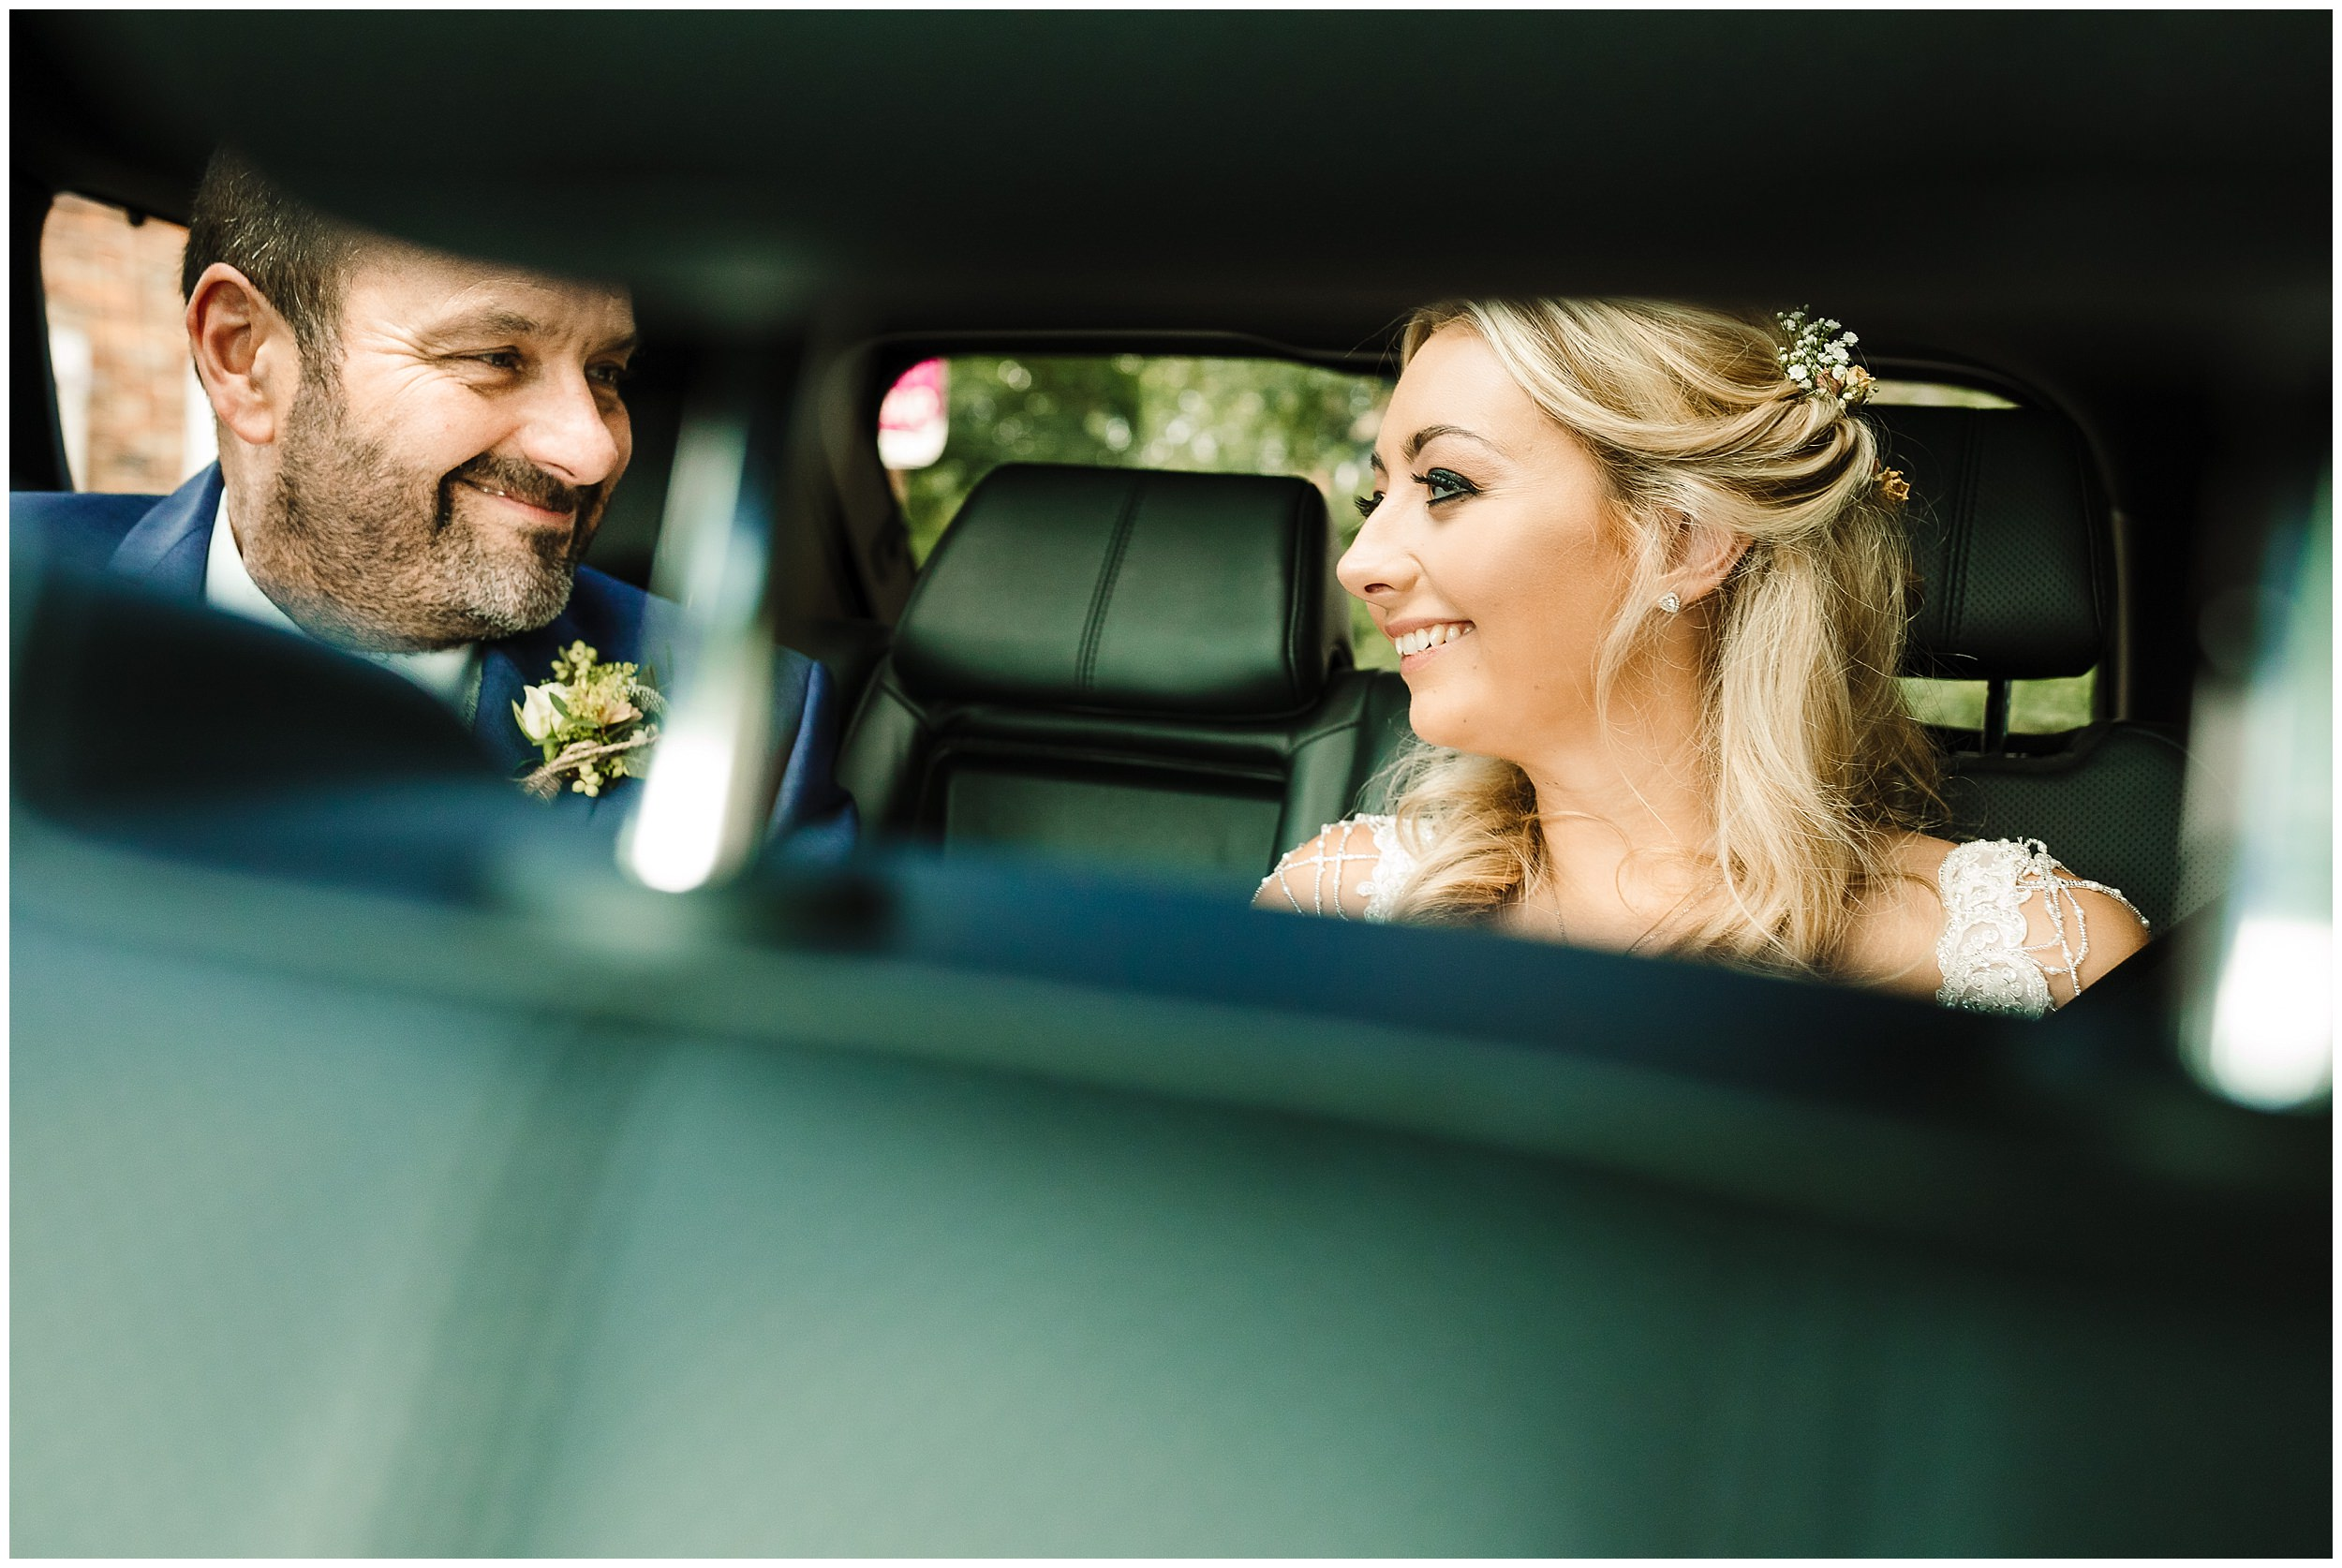 A BRIDE AND HER DAD IN THE CAR ON THE WAY TO HER WEDDING IN YORKSHIRE